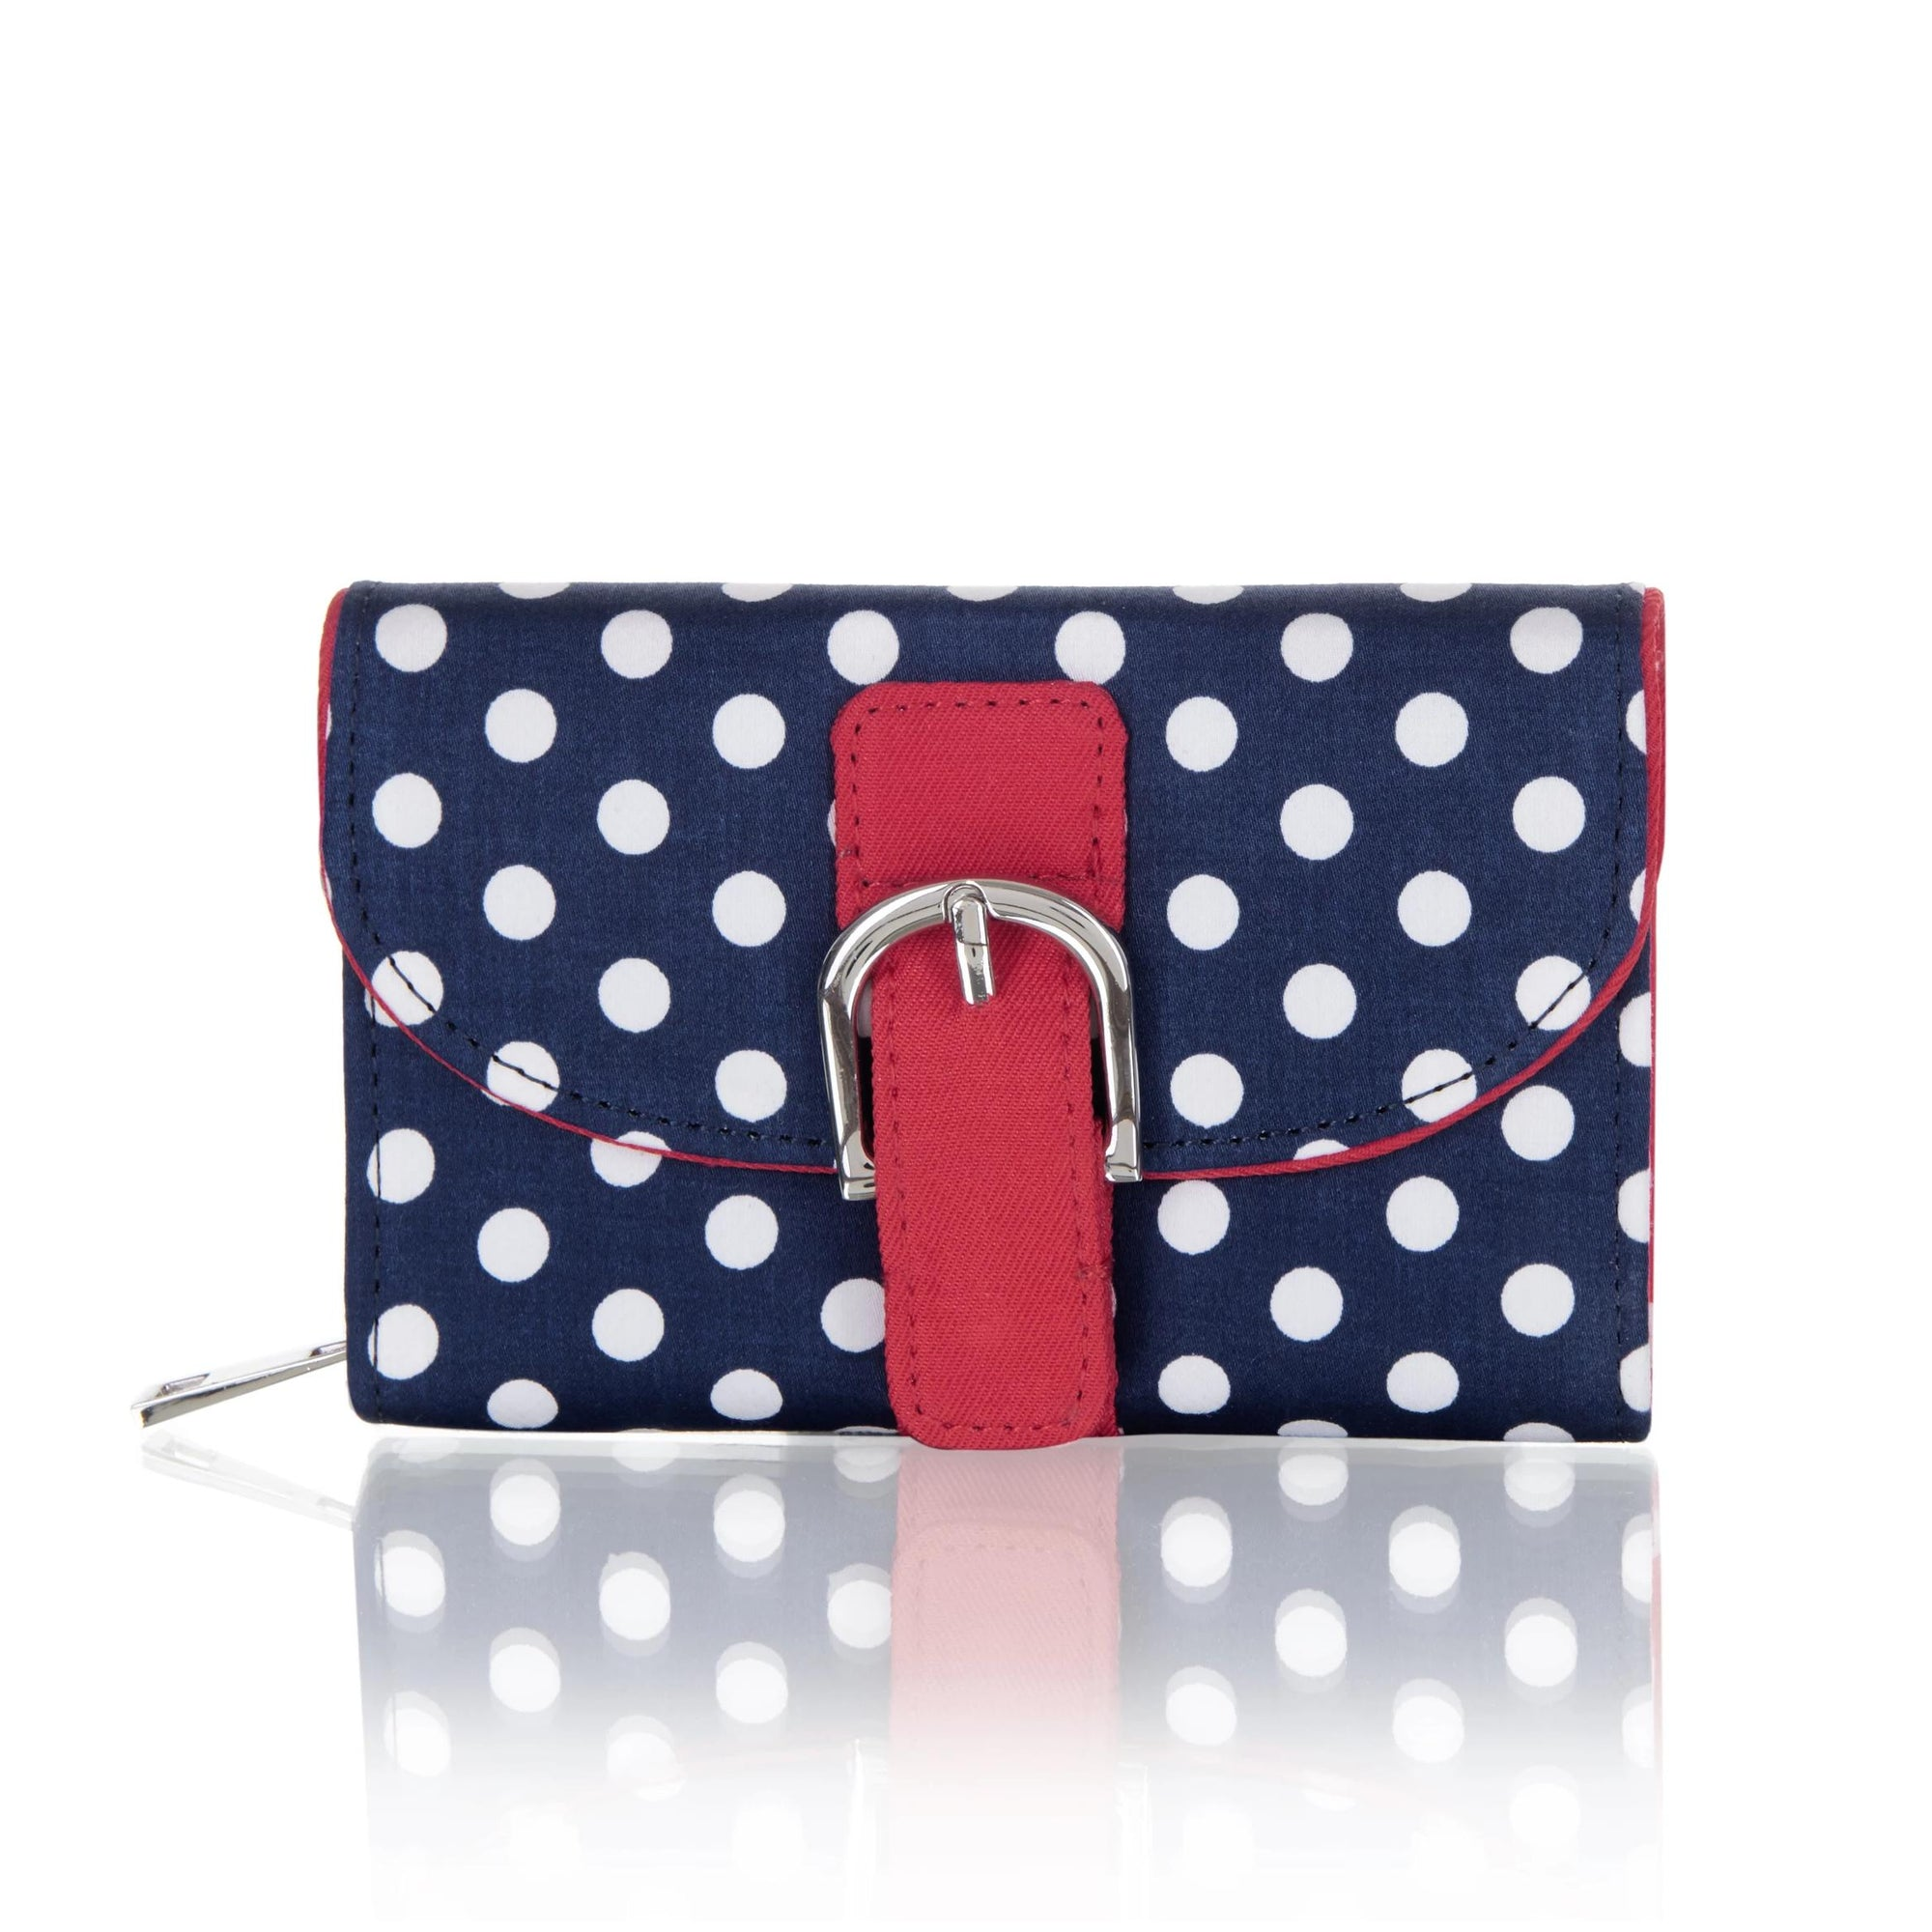 Ruby Shoo Garda Purse Navy Spots-Navy-Vendemia